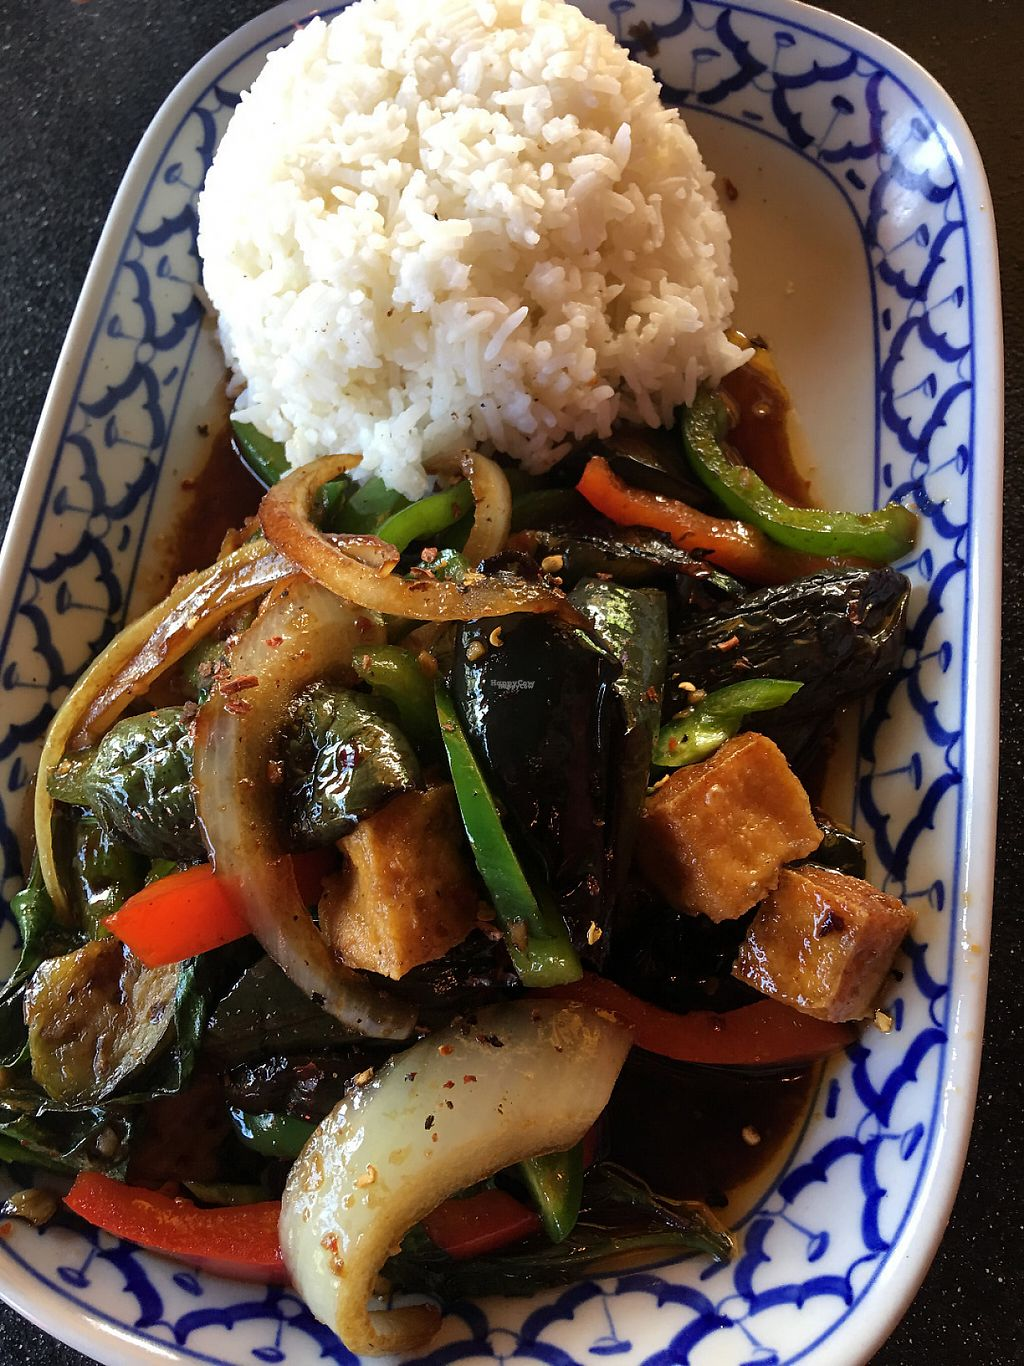 """Photo of Bangkok Happy Bowl  by <a href=""""/members/profile/myra975"""">myra975</a> <br/>Ginger Jay Tofu <br/> March 14, 2017  - <a href='/contact/abuse/image/78330/236530'>Report</a>"""